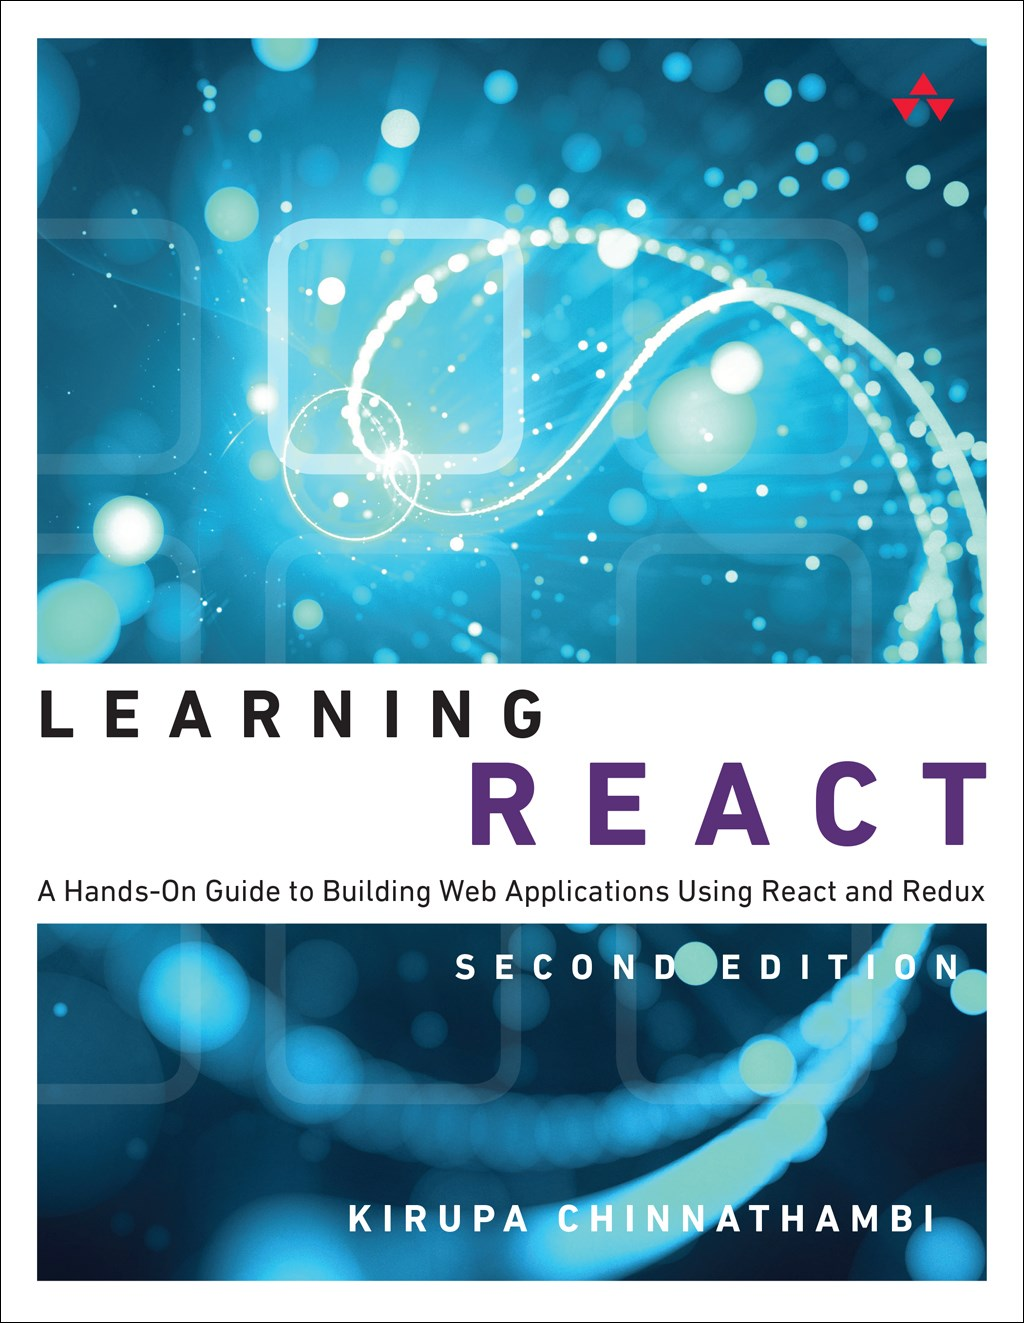 Learning React: A Hands-On Guide to Building Web Applications Using